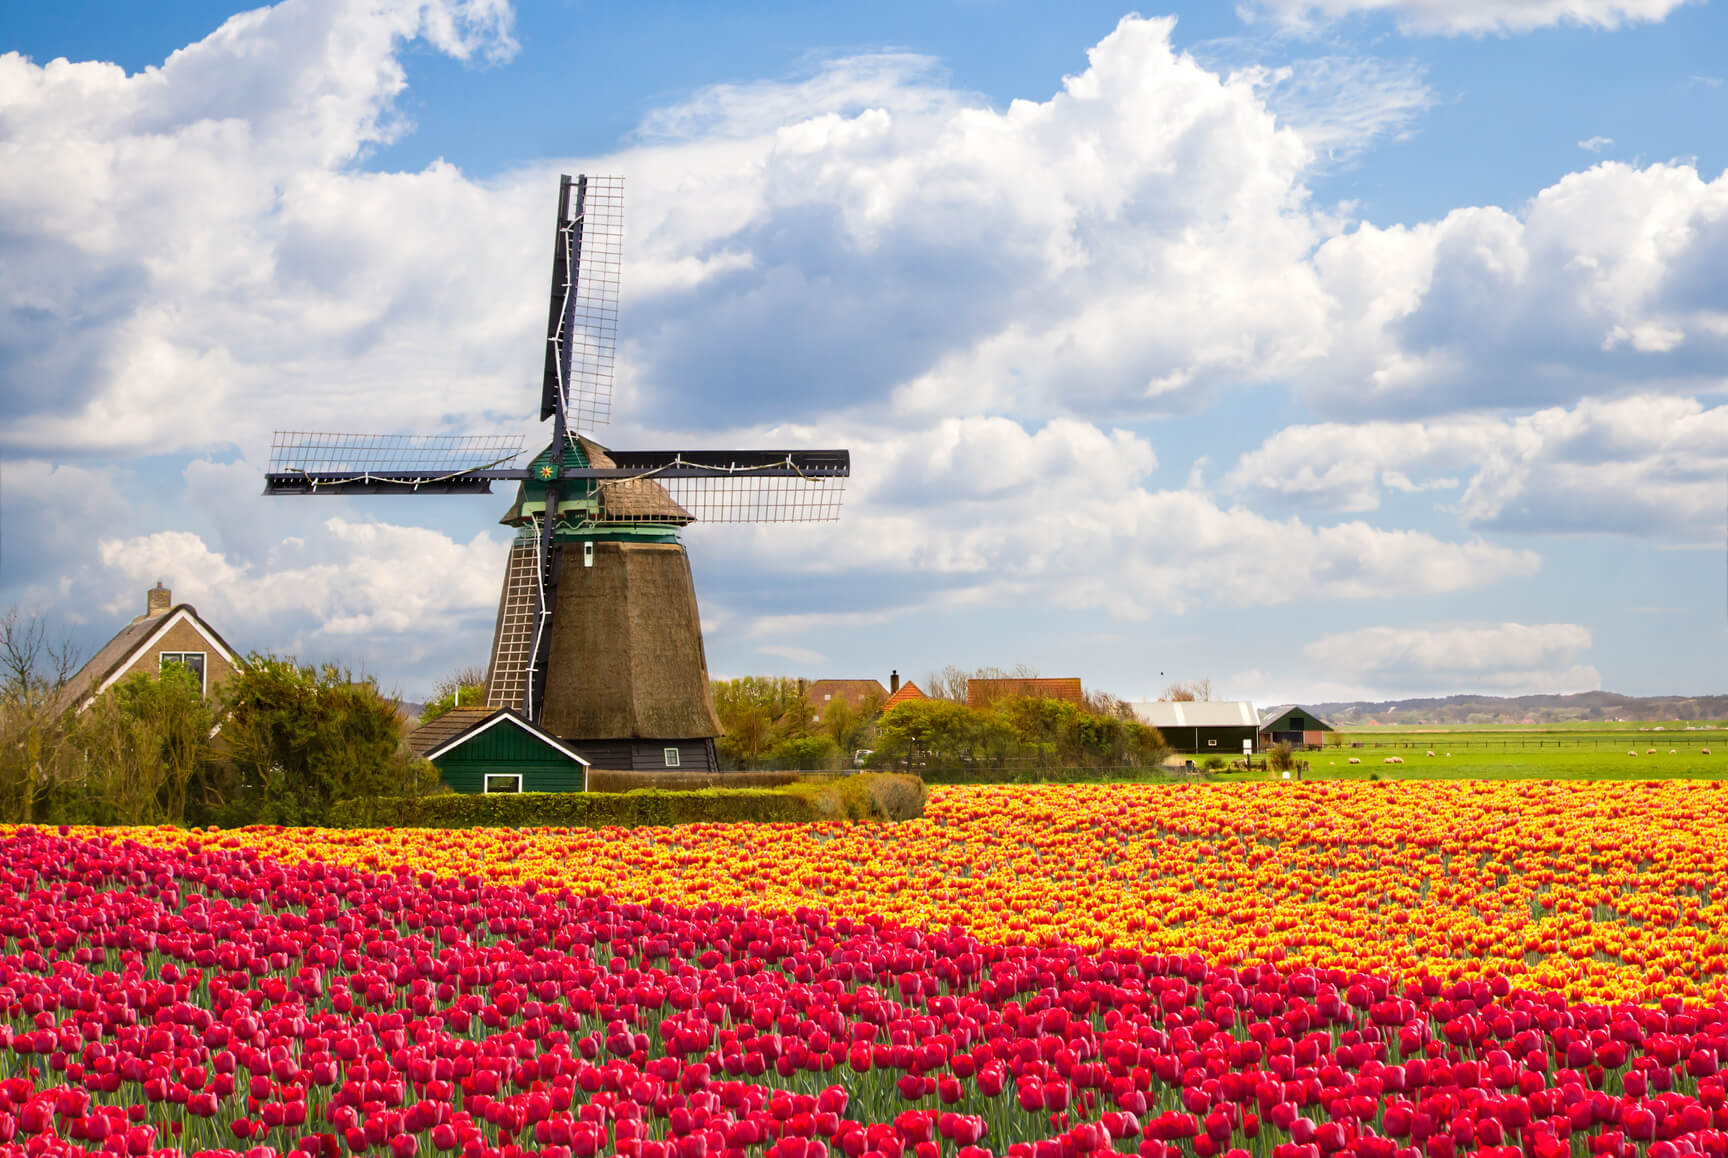 Toronto, Canada to Amsterdam, Netherlands for only $406 CAD roundtrip (Aug-Sep dates)